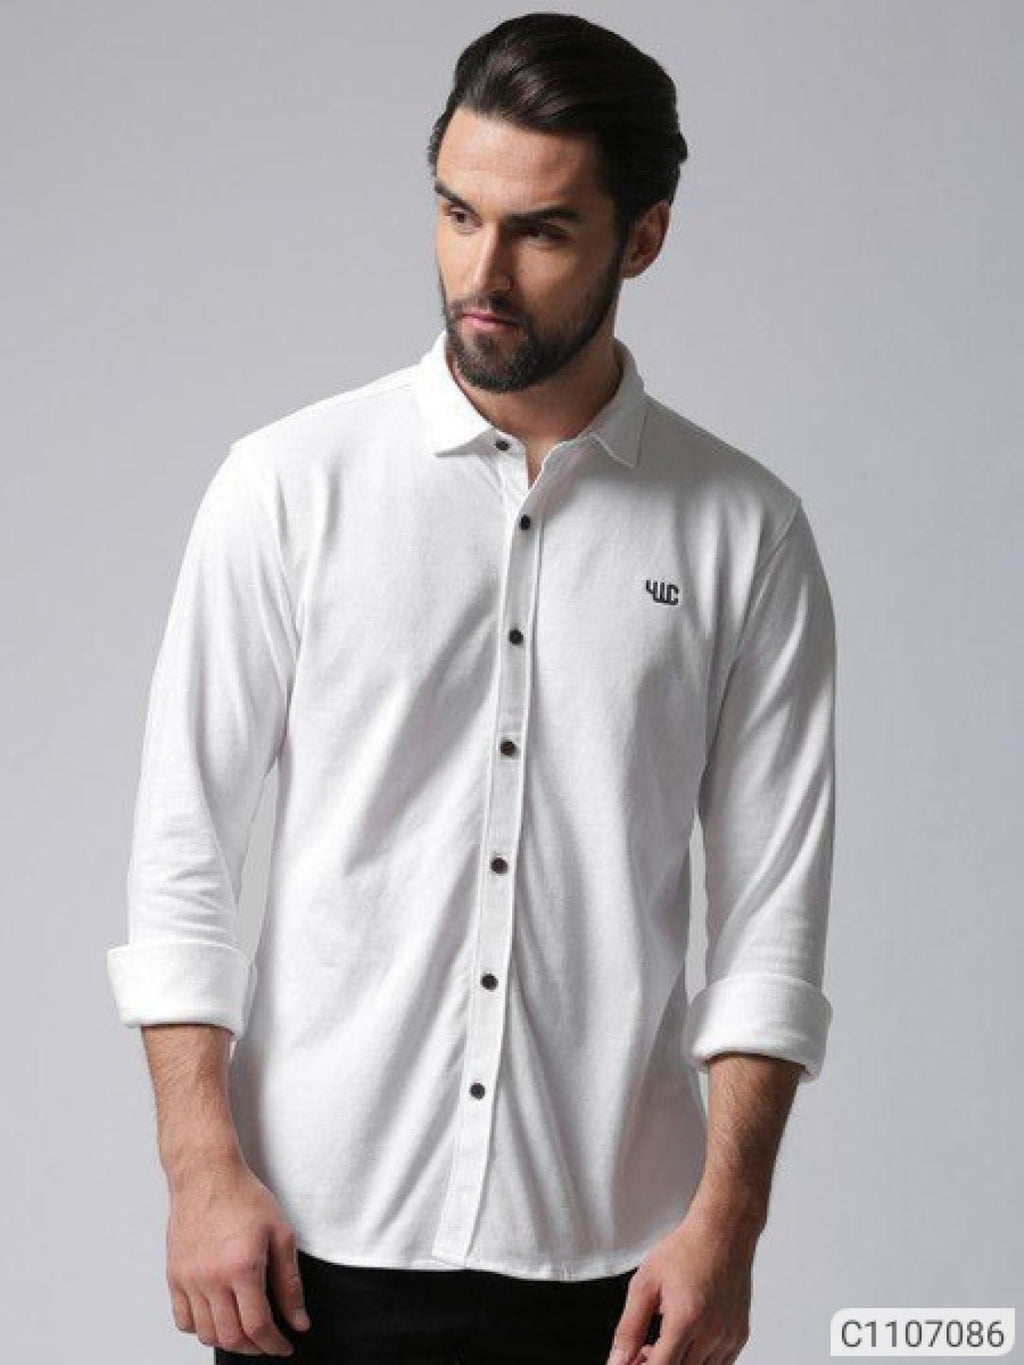 YWC Extreme White Classy Regular Fit Shirt